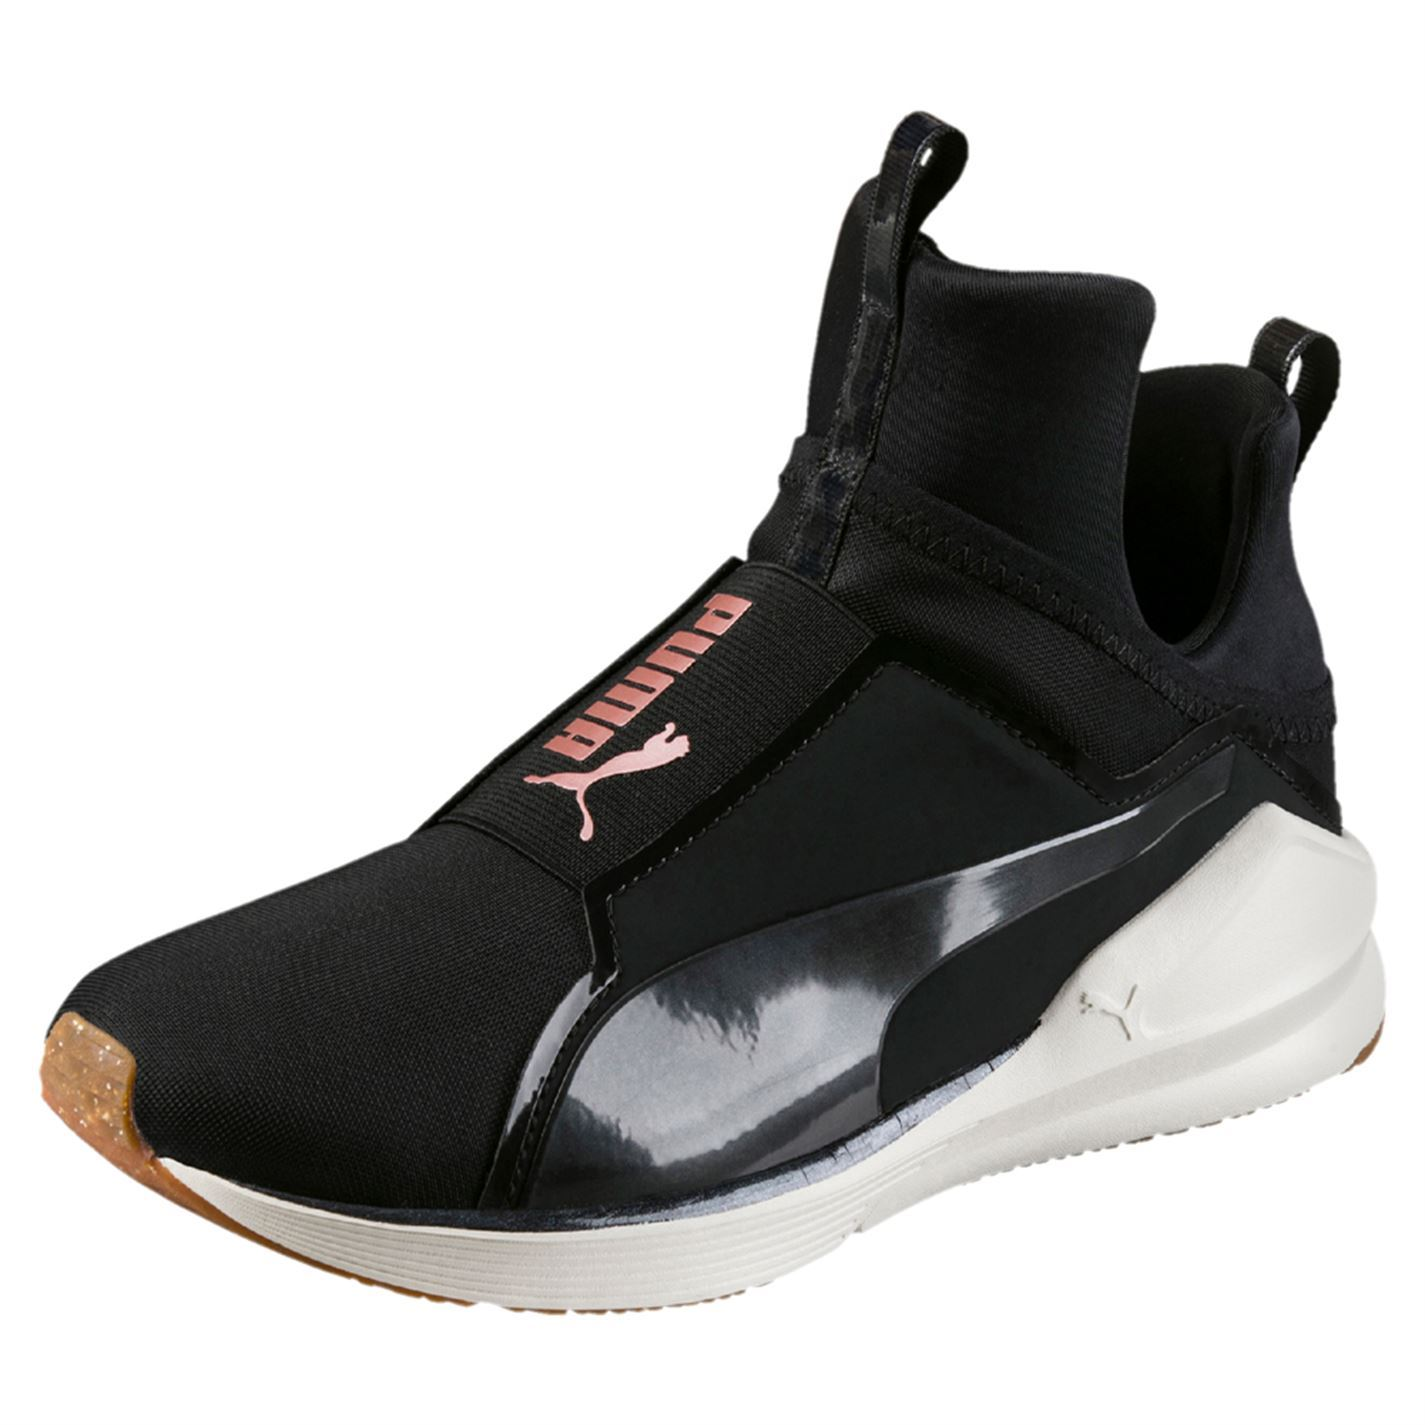 ... Puma Fierce Velvet Rope Fitness Training Shoes Womens Black Trainers  Sneakers b84e64826